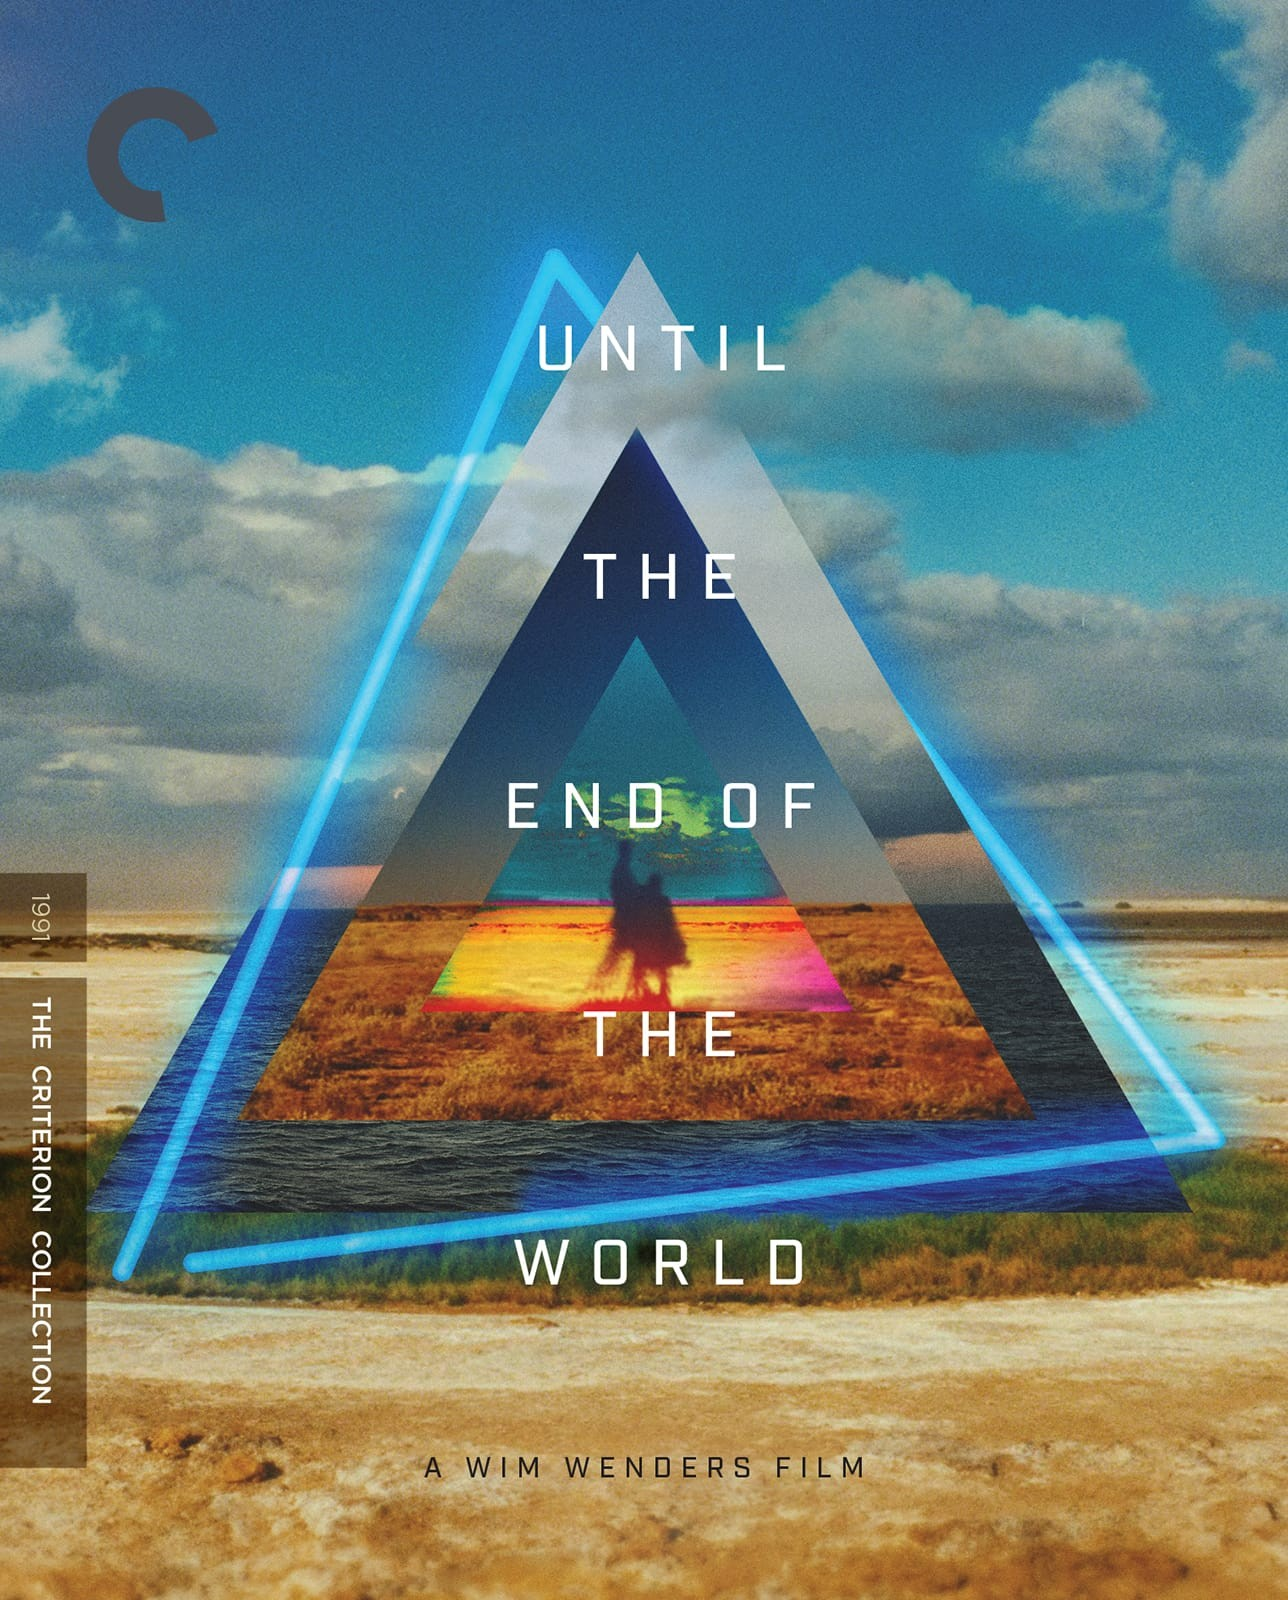 Until the End of the World (1991) | The Criterion Collection